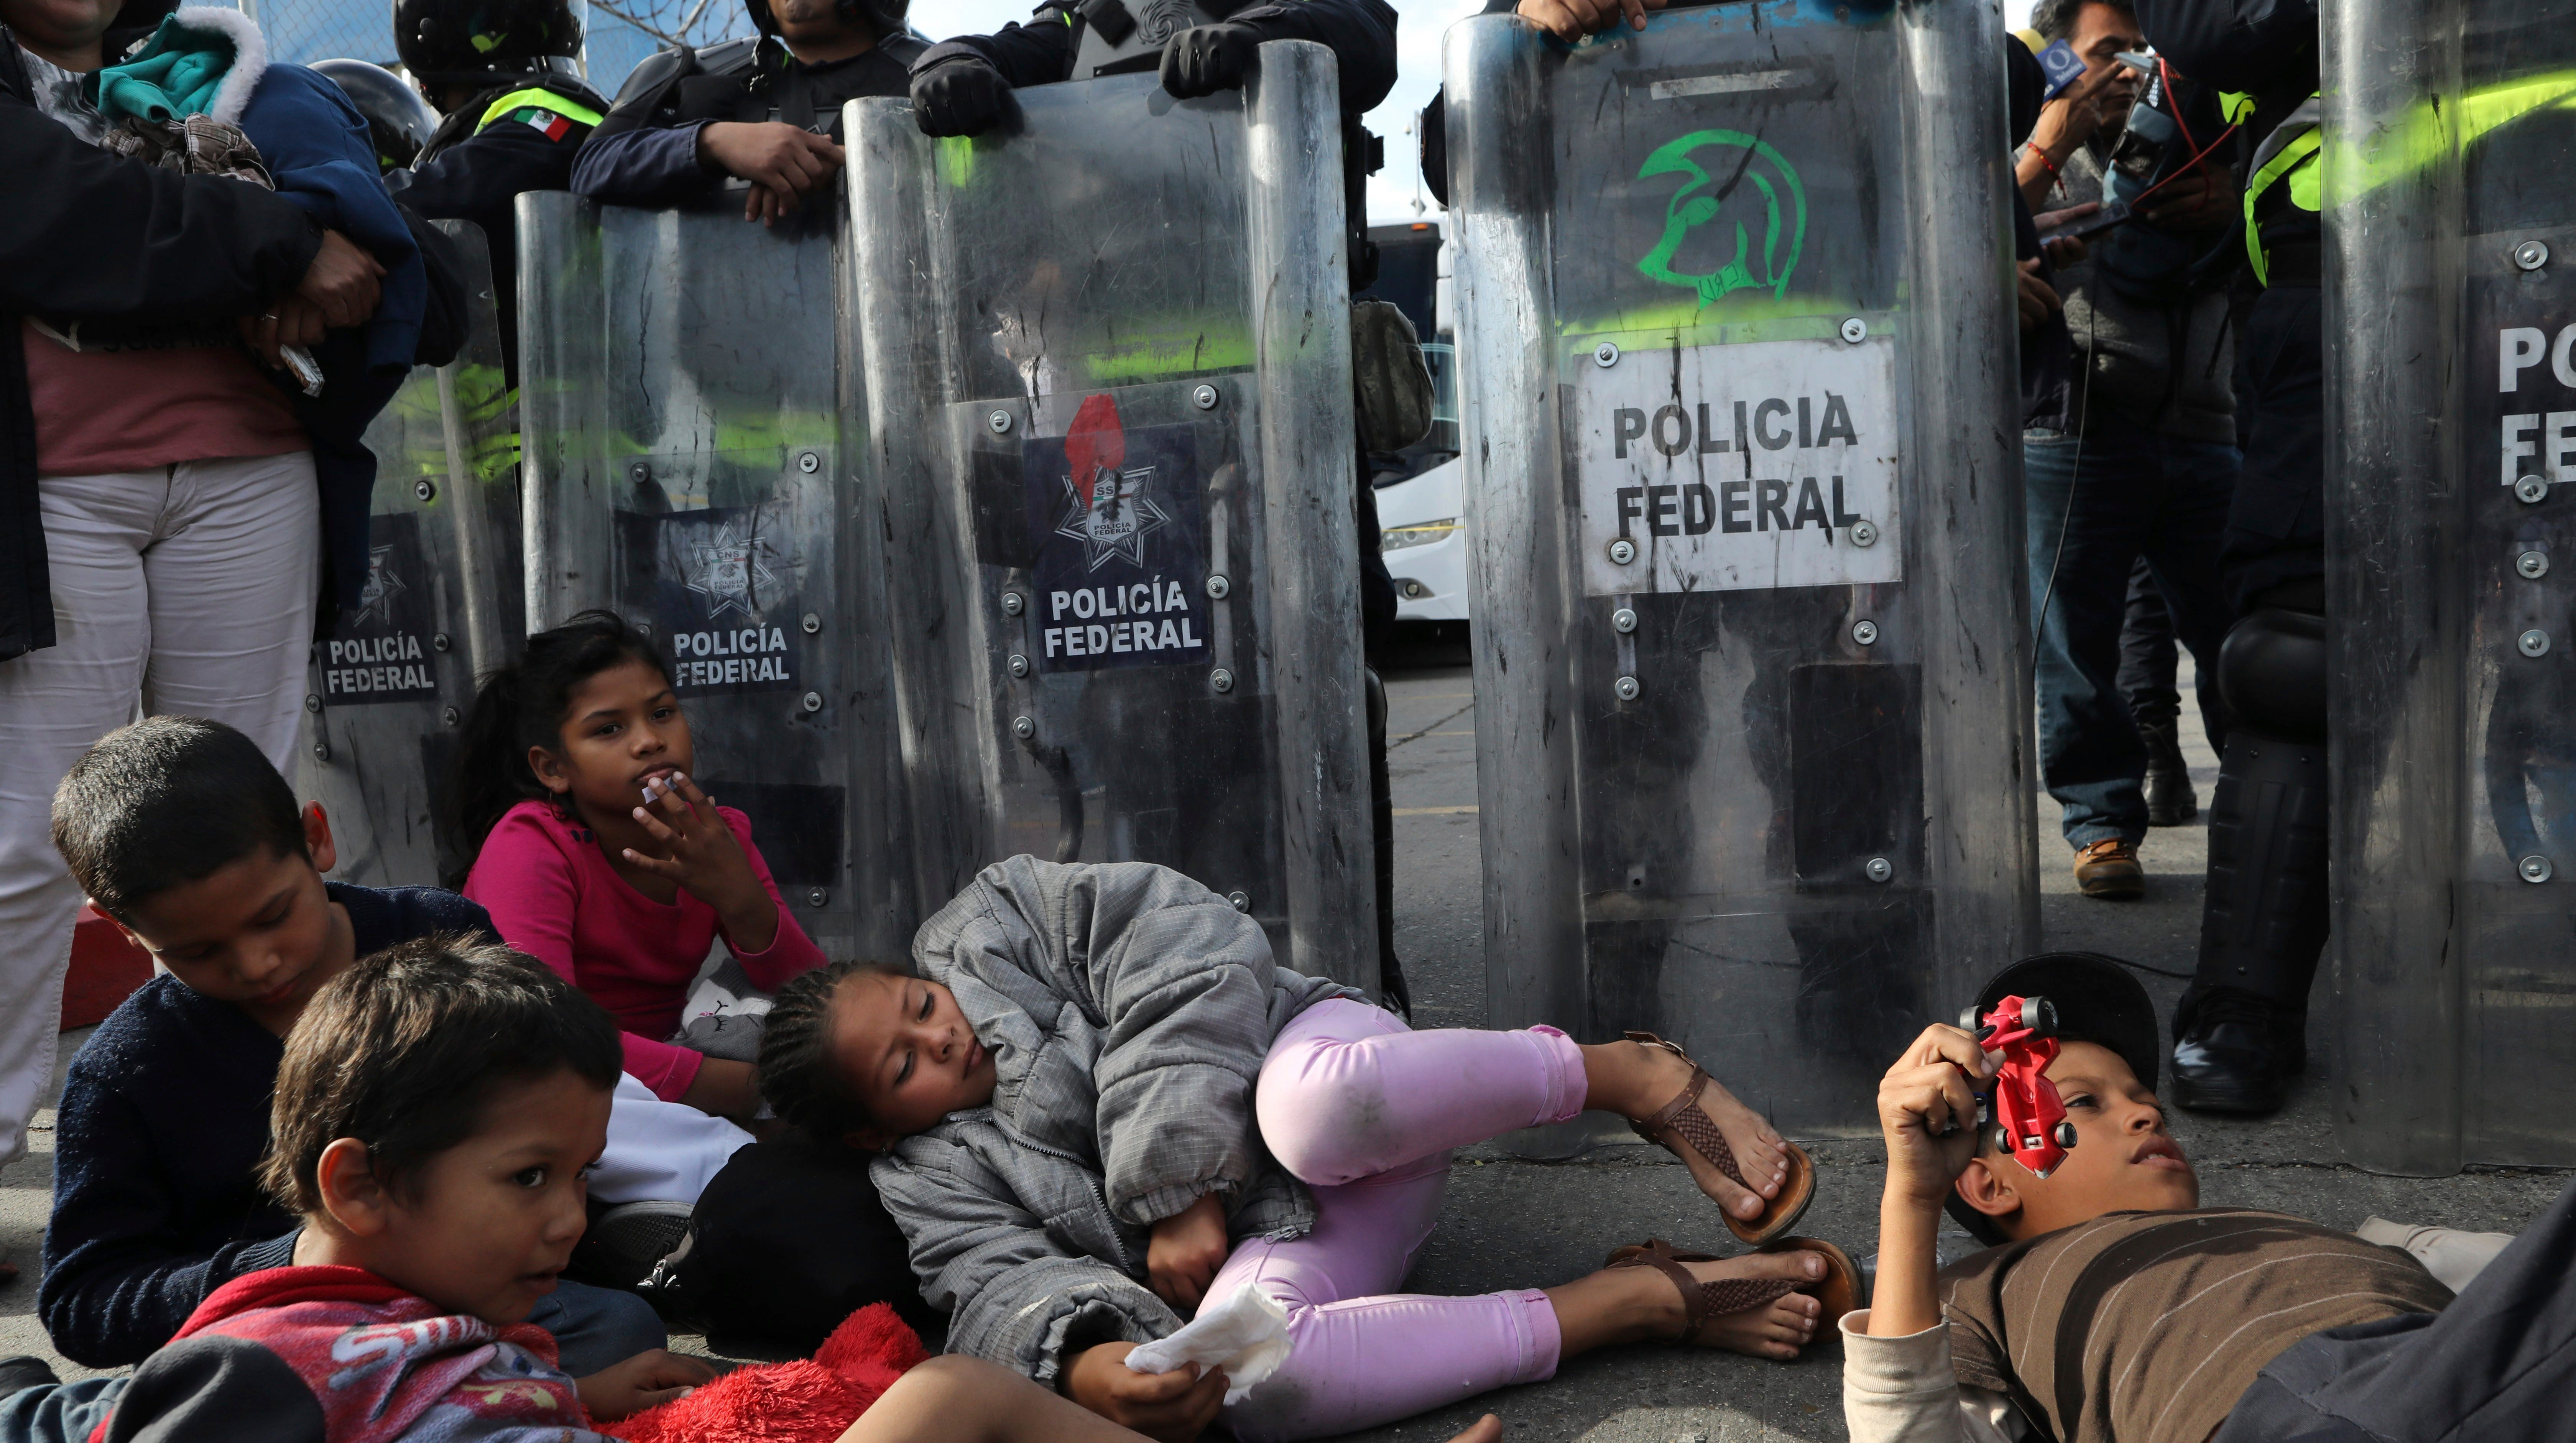 Migrant children rest in front of Mexican police in riot gear in Tijuana on Nov. 22, 2018.